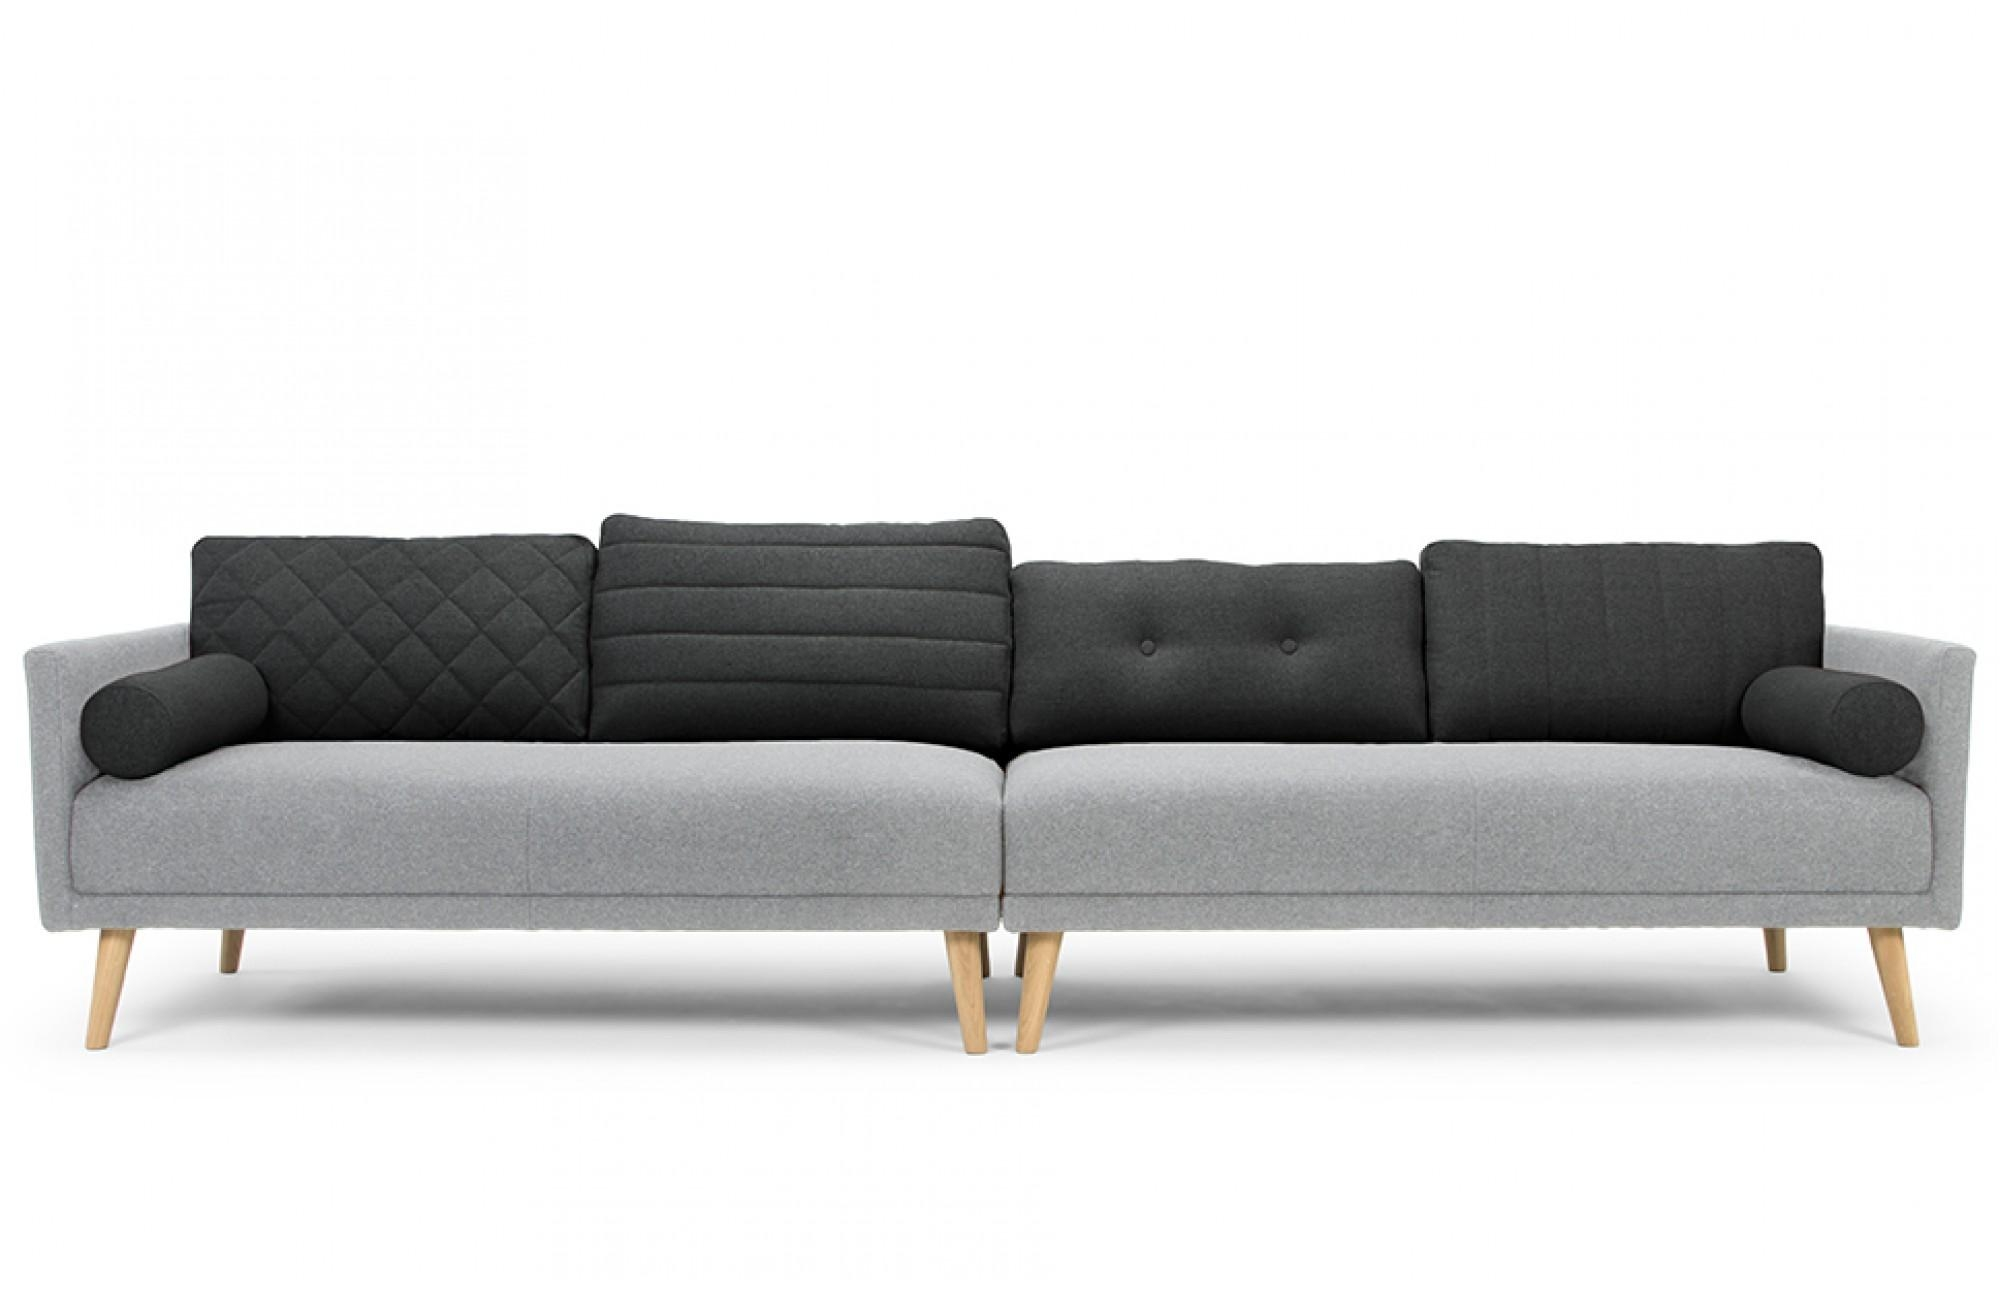 Dixie Mix 4 Seater Sofa Out And Out Original For Four Seater Sofas (Image 7